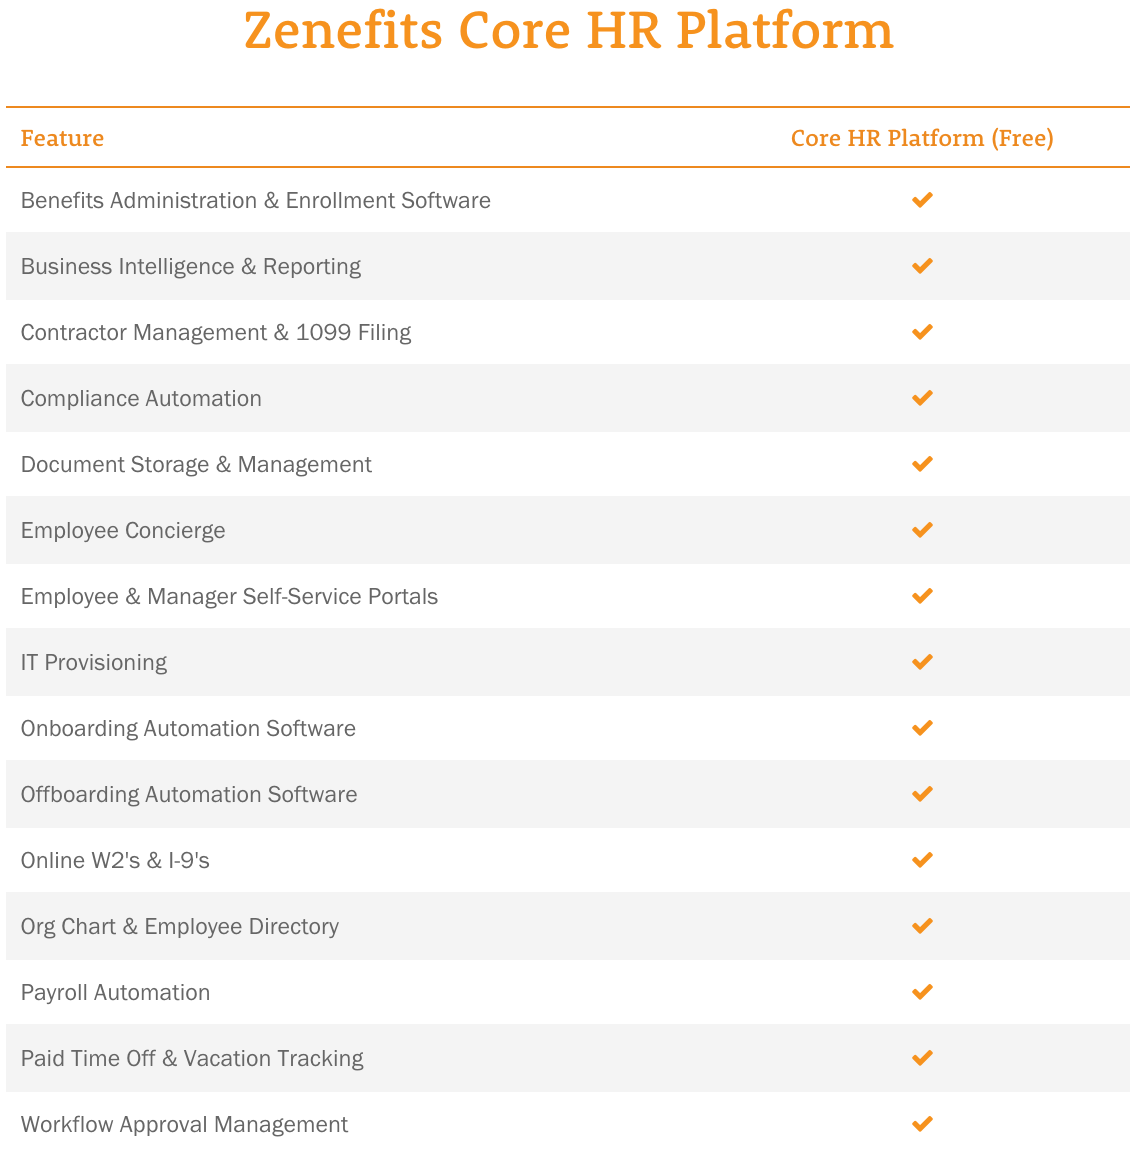 Zenefits Core HR Platform Features